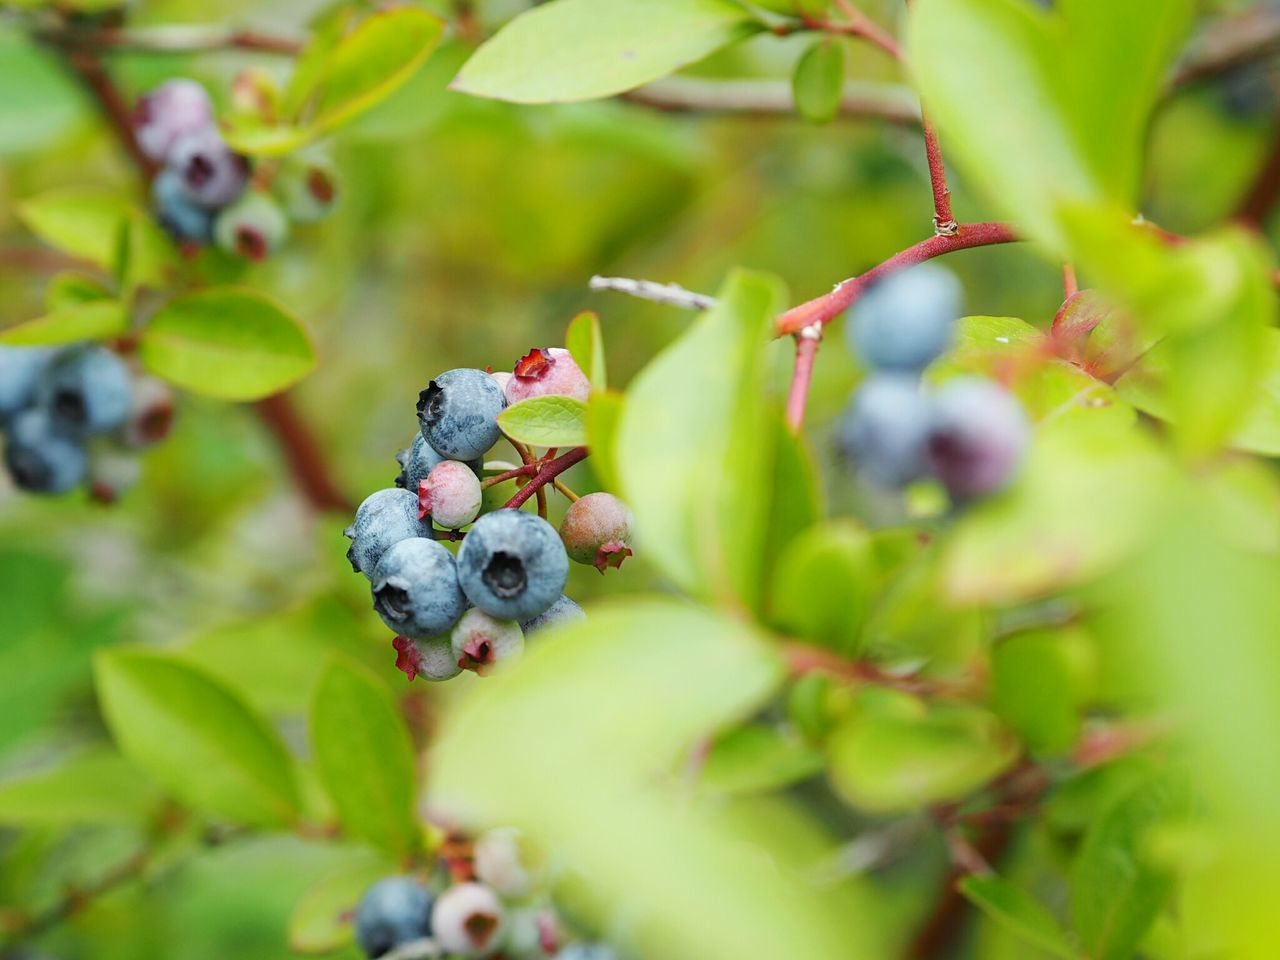 fruit, berry fruit, food and drink, no people, selective focus, green color, growth, day, outdoors, nature, freshness, close-up, food, leaf, blueberry, plant, healthy eating, tree, beauty in nature